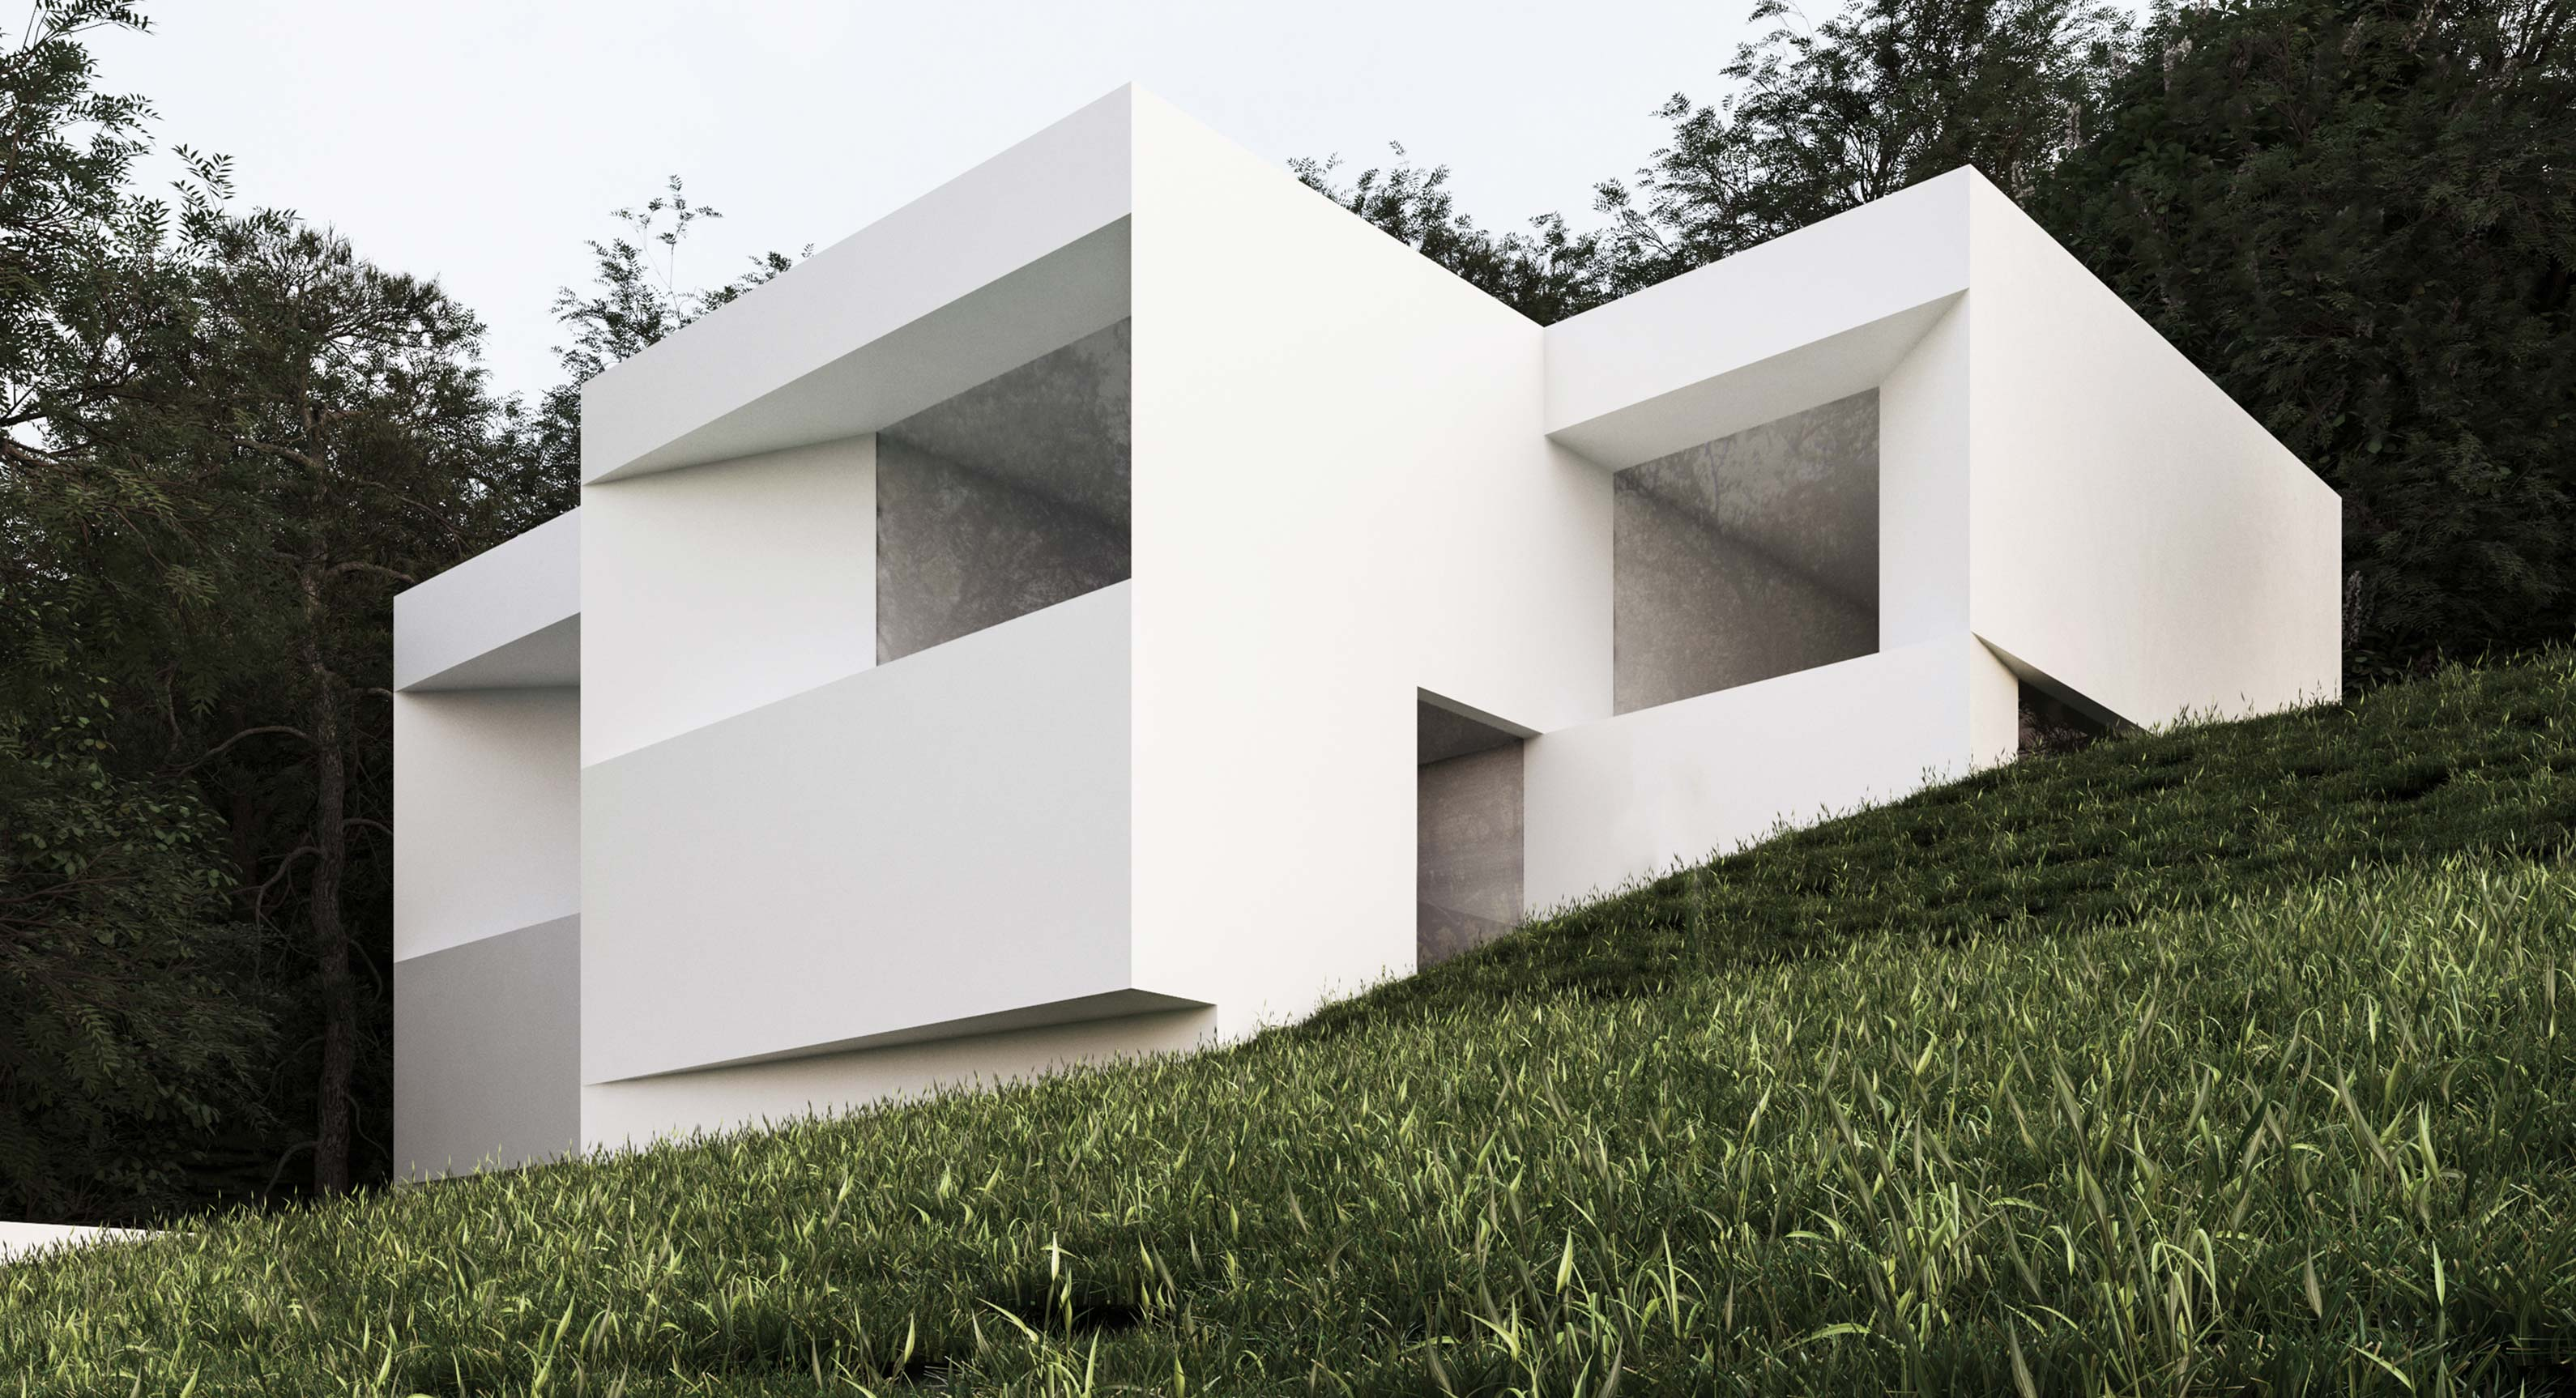 The house between the pines by fran silvestre arquitectos - Fran silvestre arquitectos ...